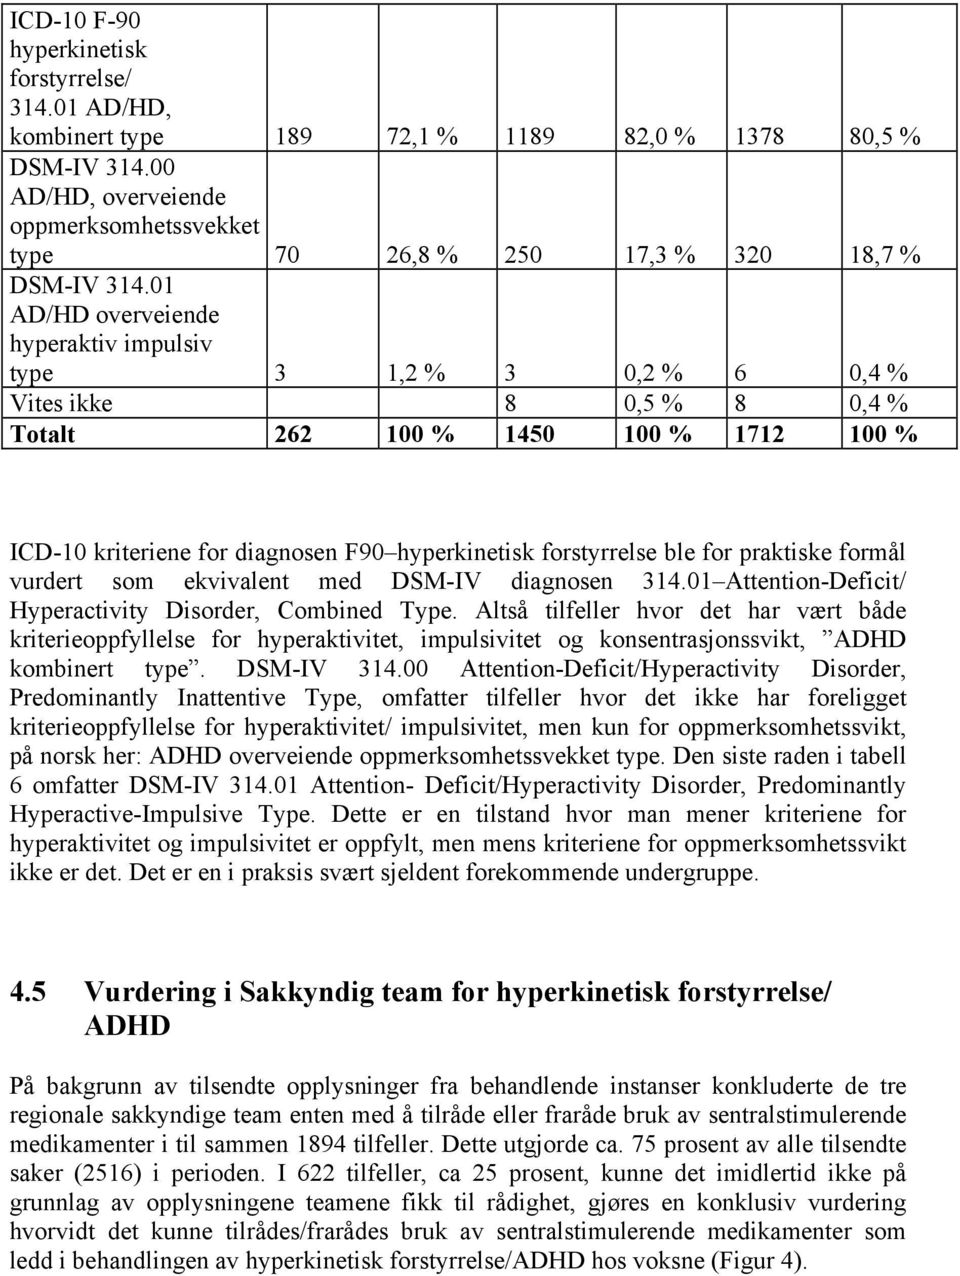 01 AD/HD overveiende hyperaktiv impulsiv type 3 1,2 % 3 0,2 % 6 0,4 % Vites ikke 8 0,5 % 8 0,4 % Totalt 262 100 % 1450 100 % 1712 100 % ICD-10 kriteriene for diagnosen F90 hyperkinetisk forstyrrelse